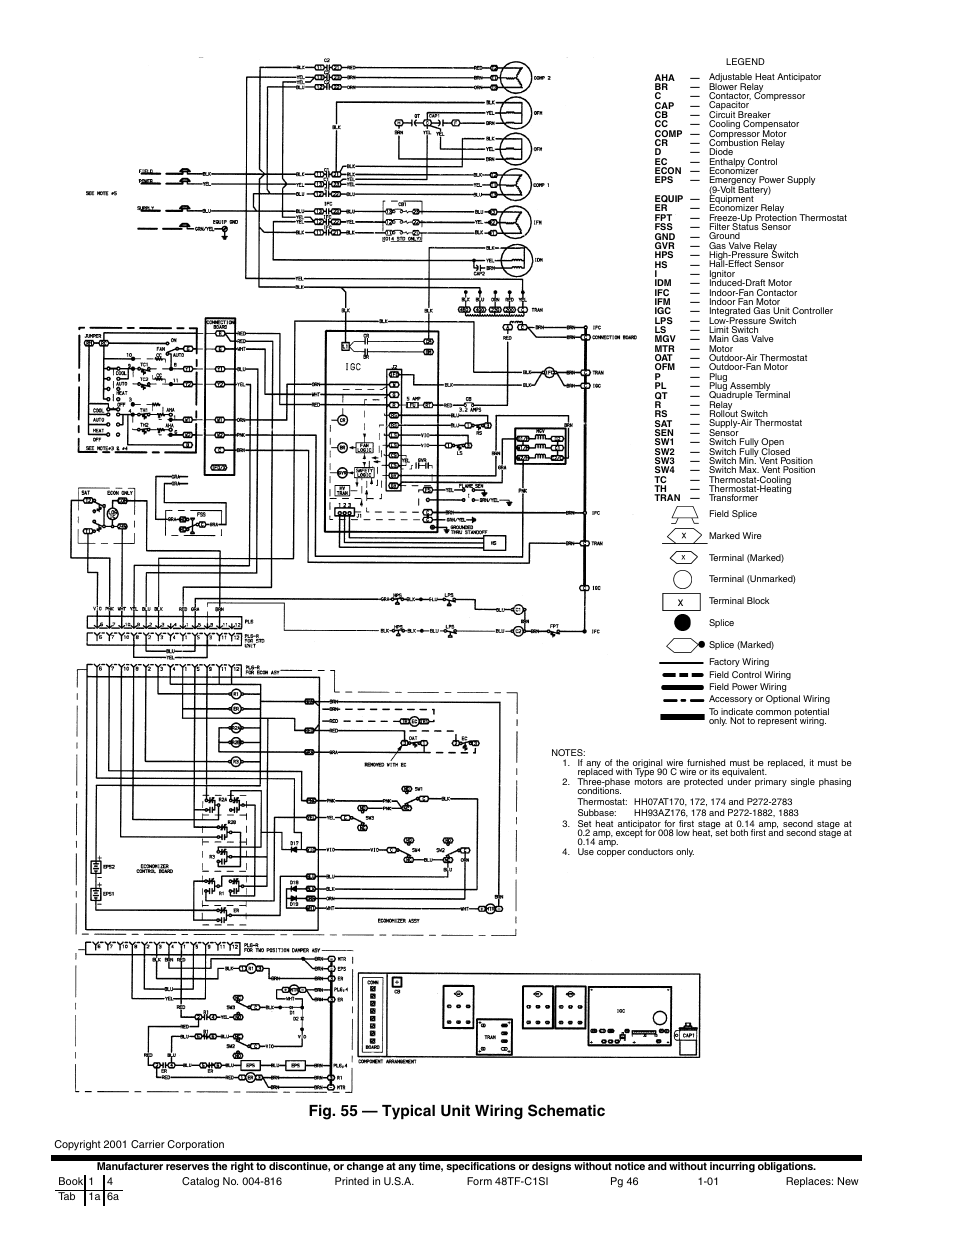 carrier 48tfe008 014 page46 fig 55 typical unit wiring schematic carrier 48tfe008 014 field controls power venter wiring diagram at edmiracle.co